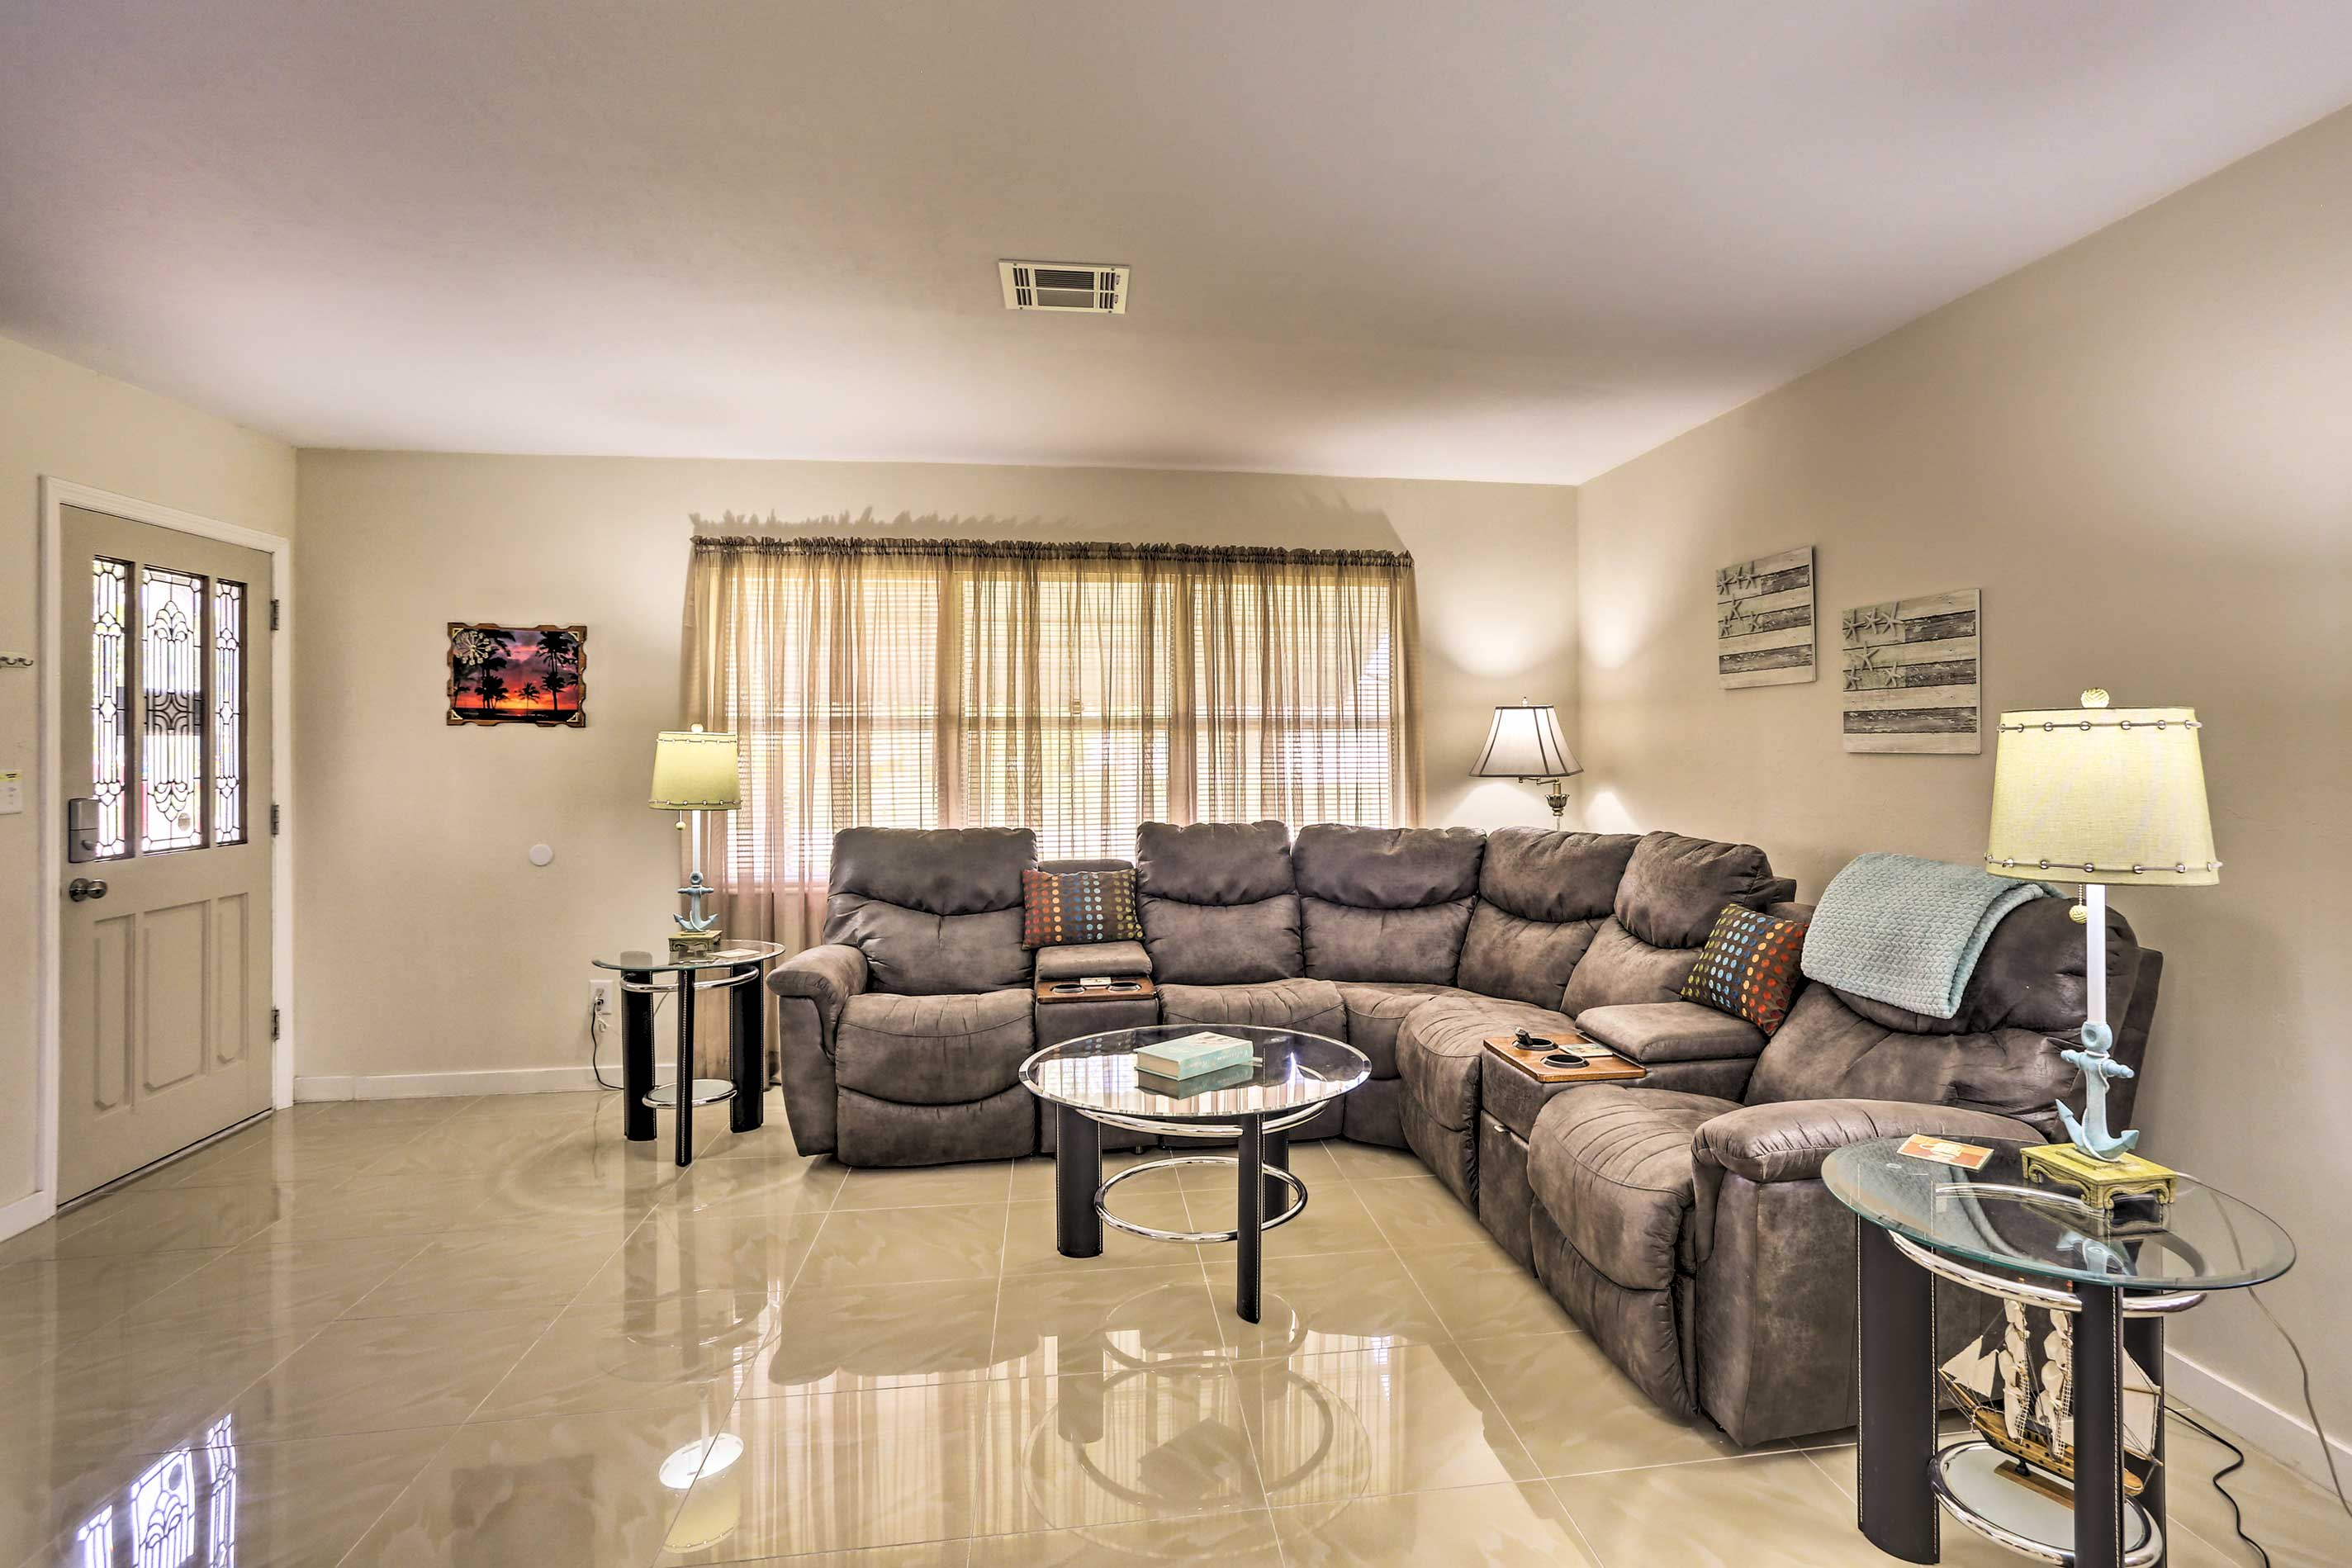 Stretch out on the large sectional sofa.